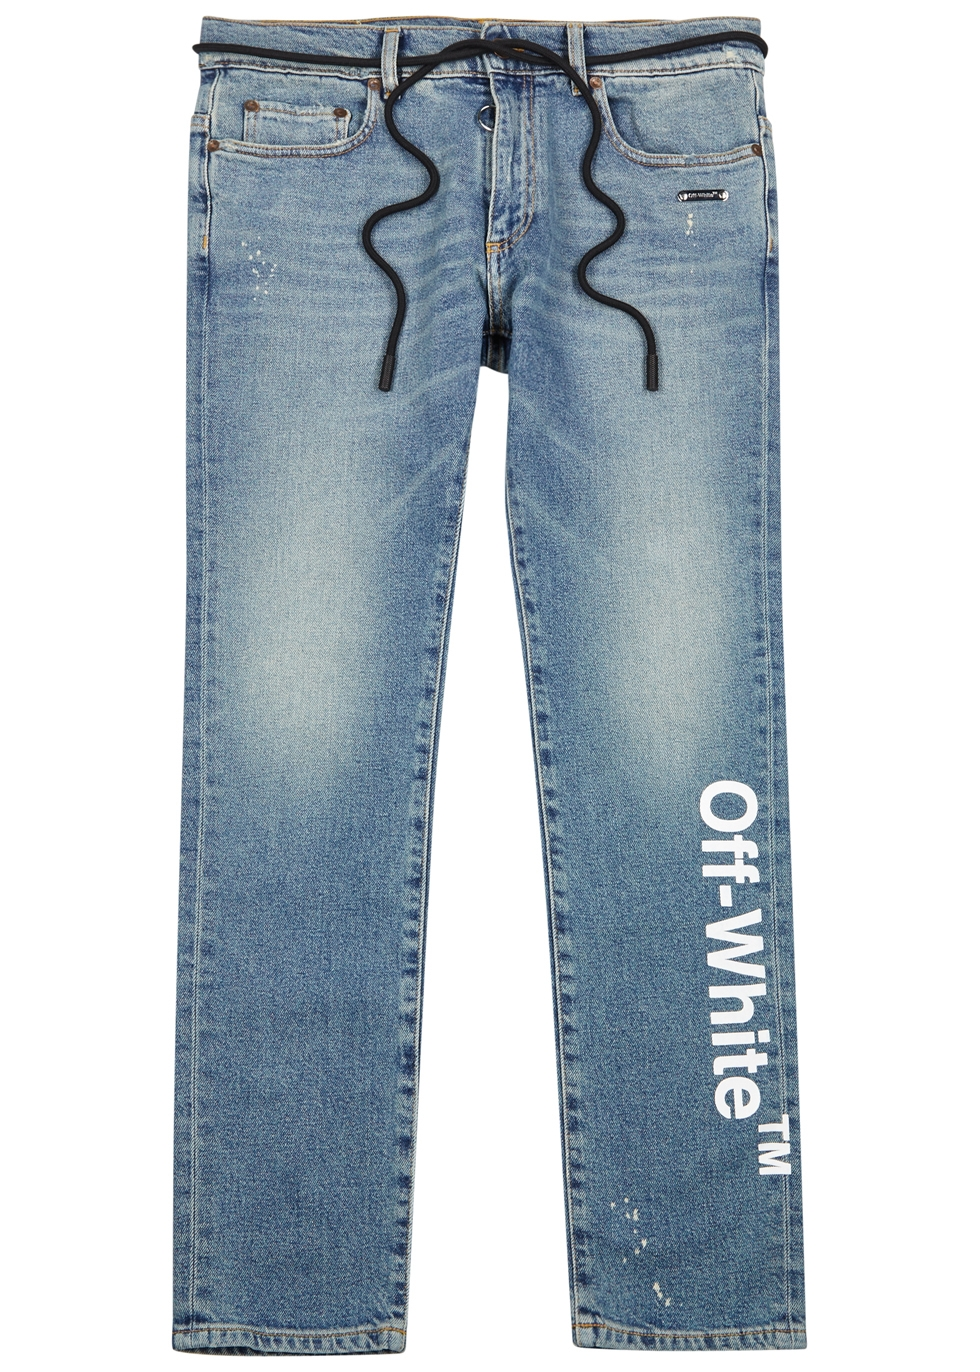 OFF-WHITE Skinny-Fit Printed Stretch-Denim Jeans in White